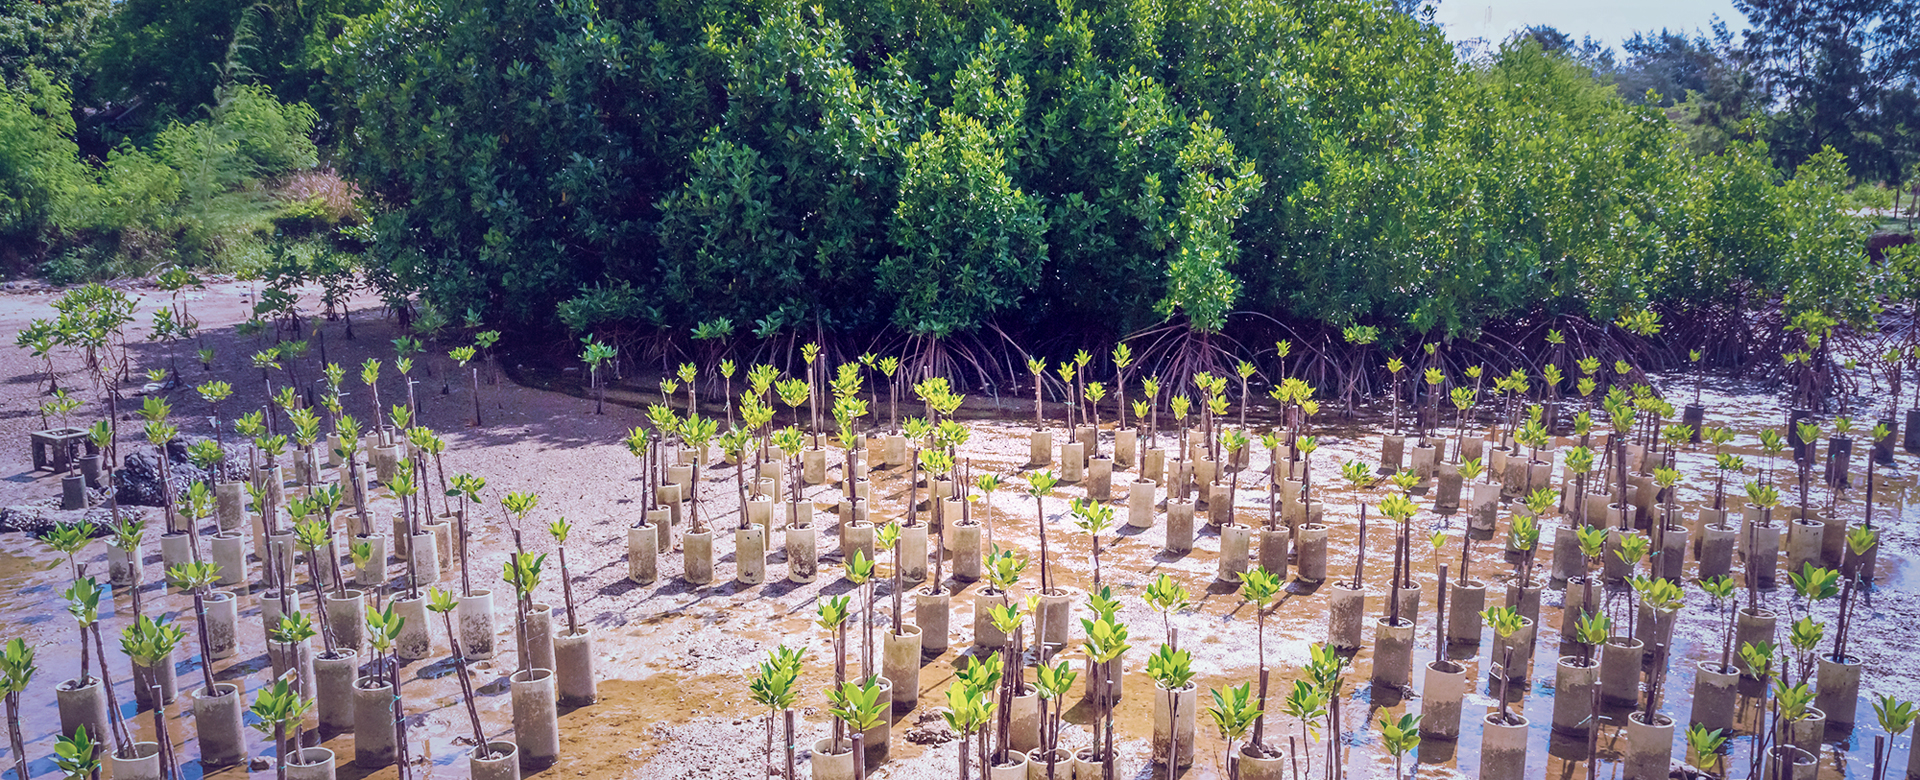 Planting mangroves replacement.